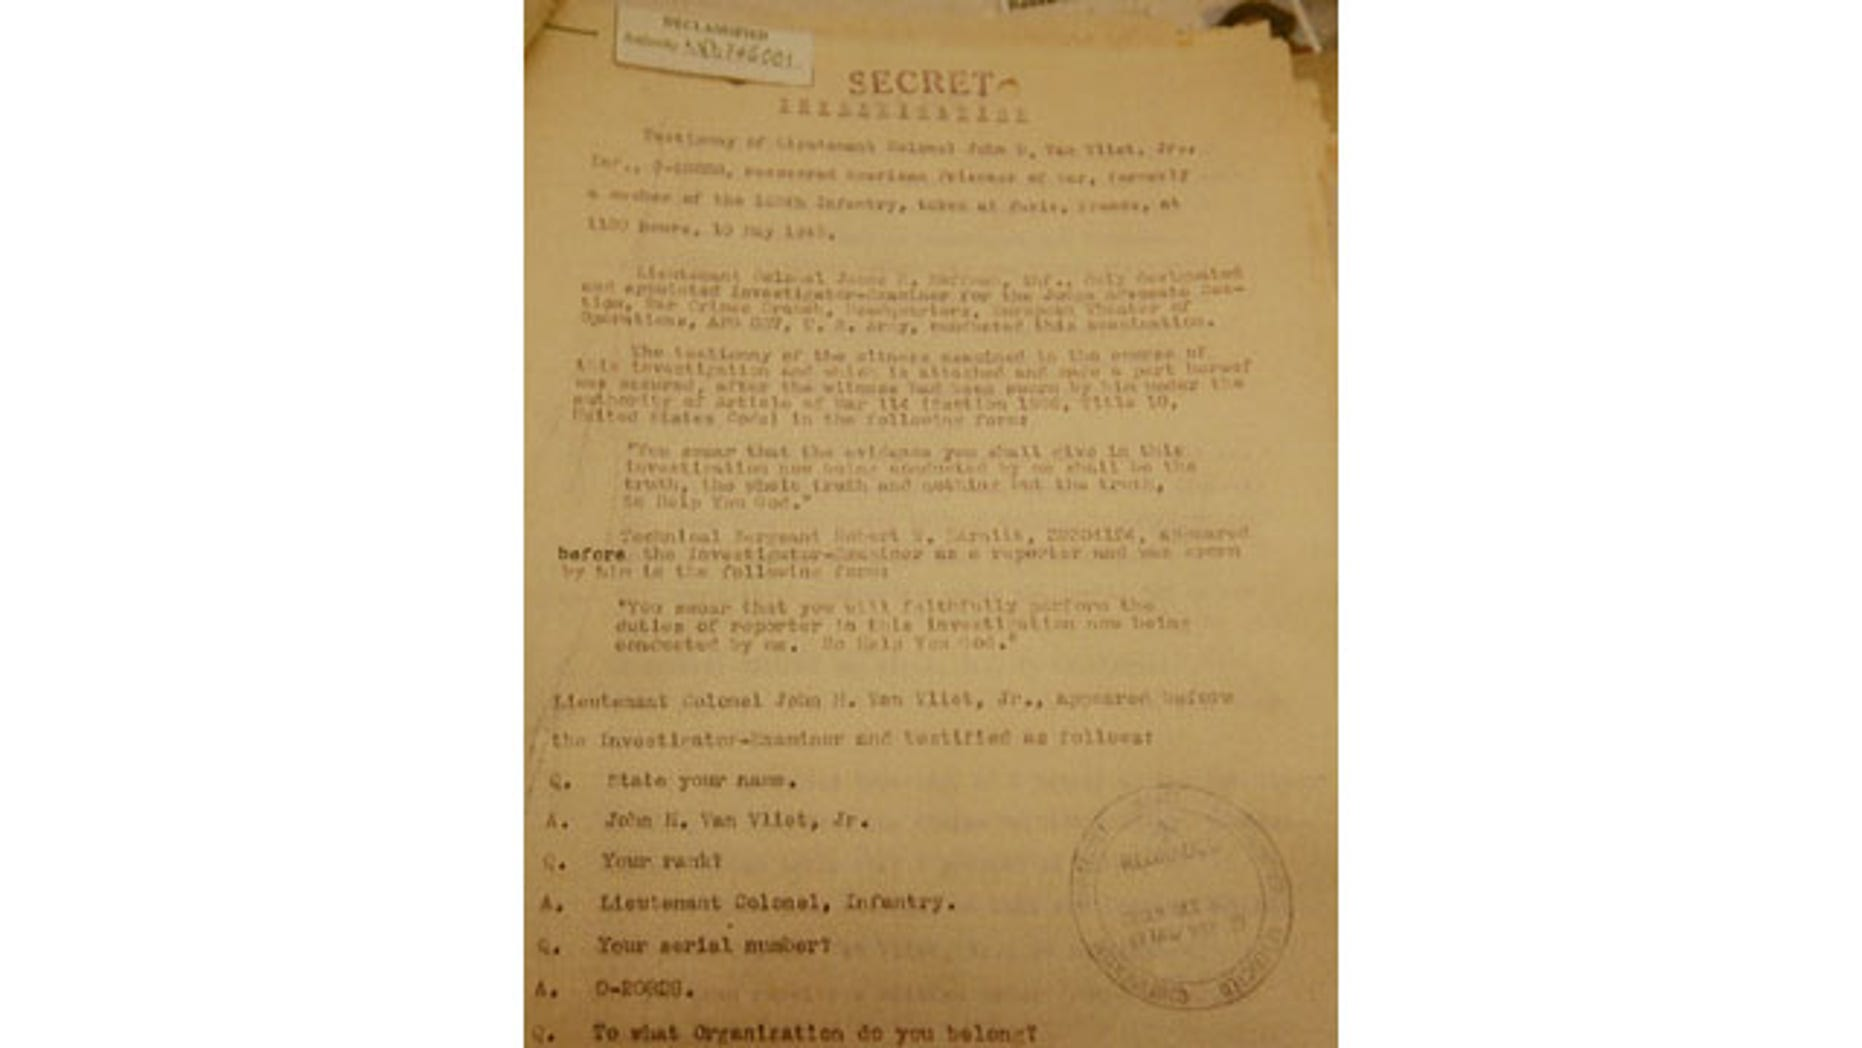 January 8, 2014: This picture shows a copy of the first page of what is believed recently uncovered vital testimony made in 1945 in Paris by U.S. Lt. Col. John H. Van Vliet Jr. It provides evidence of Soviet responsibility for the World War II massacre of some 22,000 Polish officers in Katyn forest and other locations in then-Soviet Union. (AP)